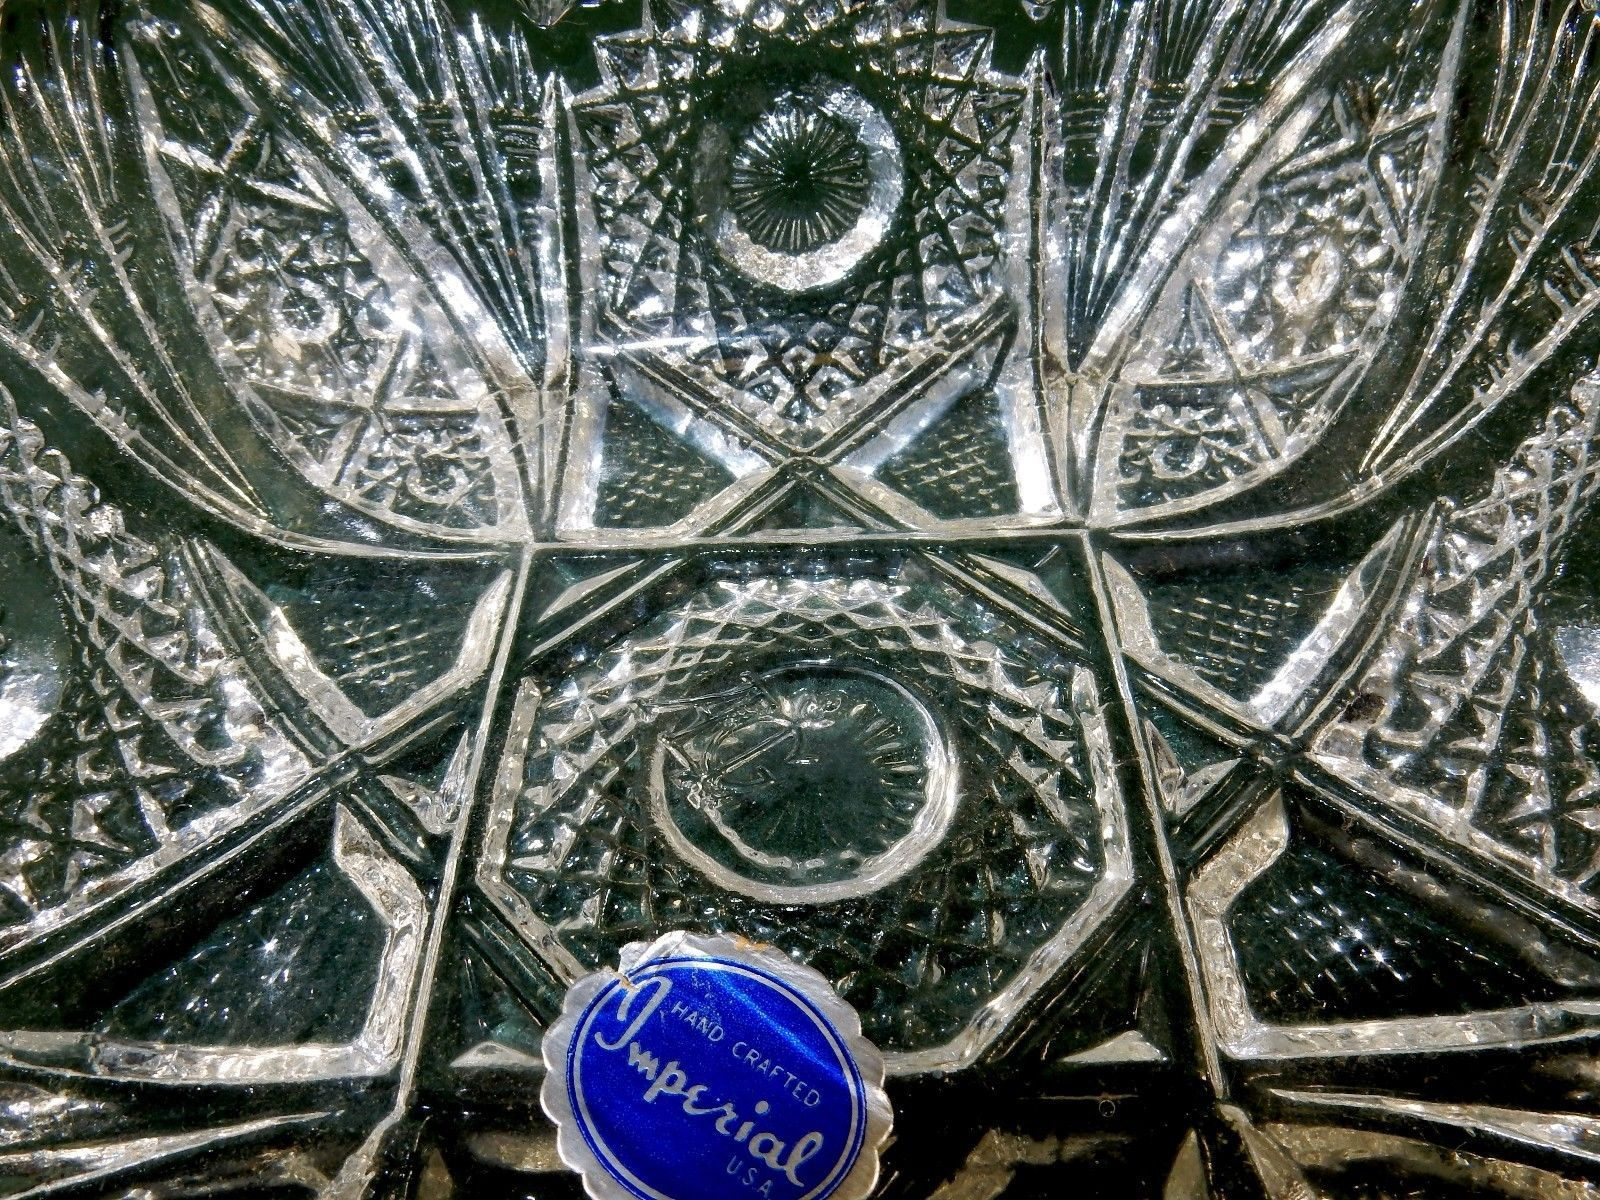 Imperial Square Glass Dish, Vintage 1982 Mark, Starbursts & Lines, Sawtooth Rim